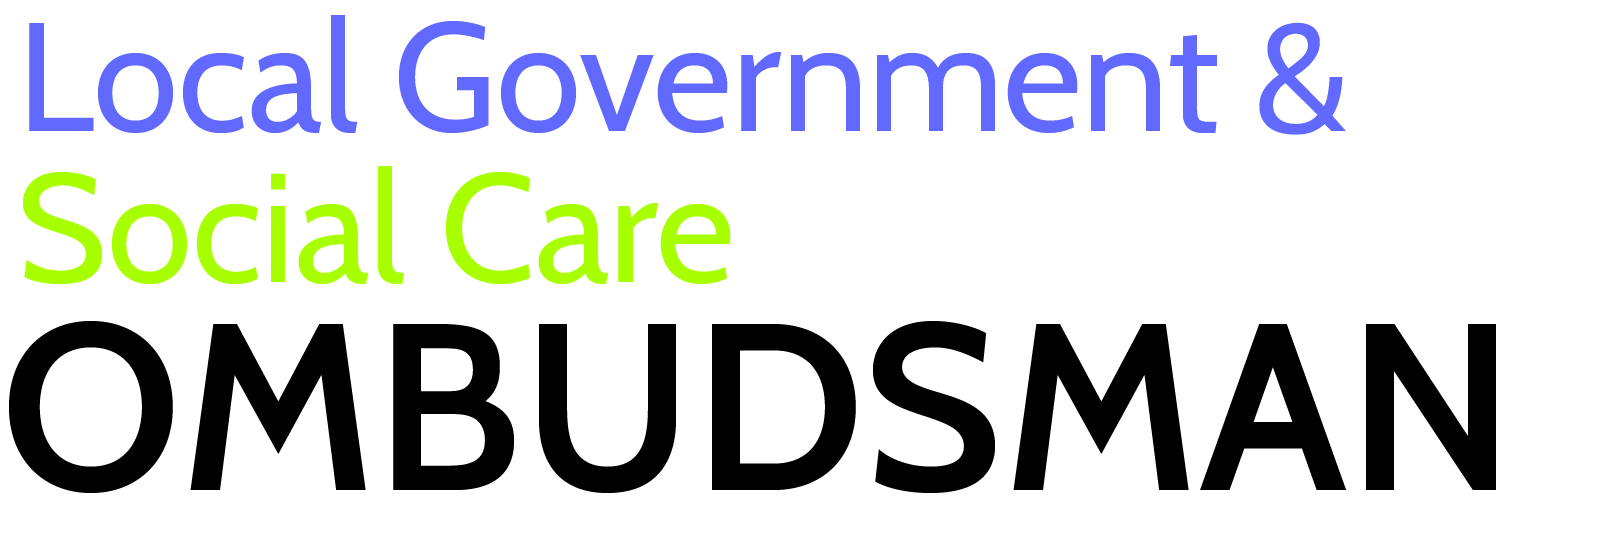 Local government and social care ombudsman logo